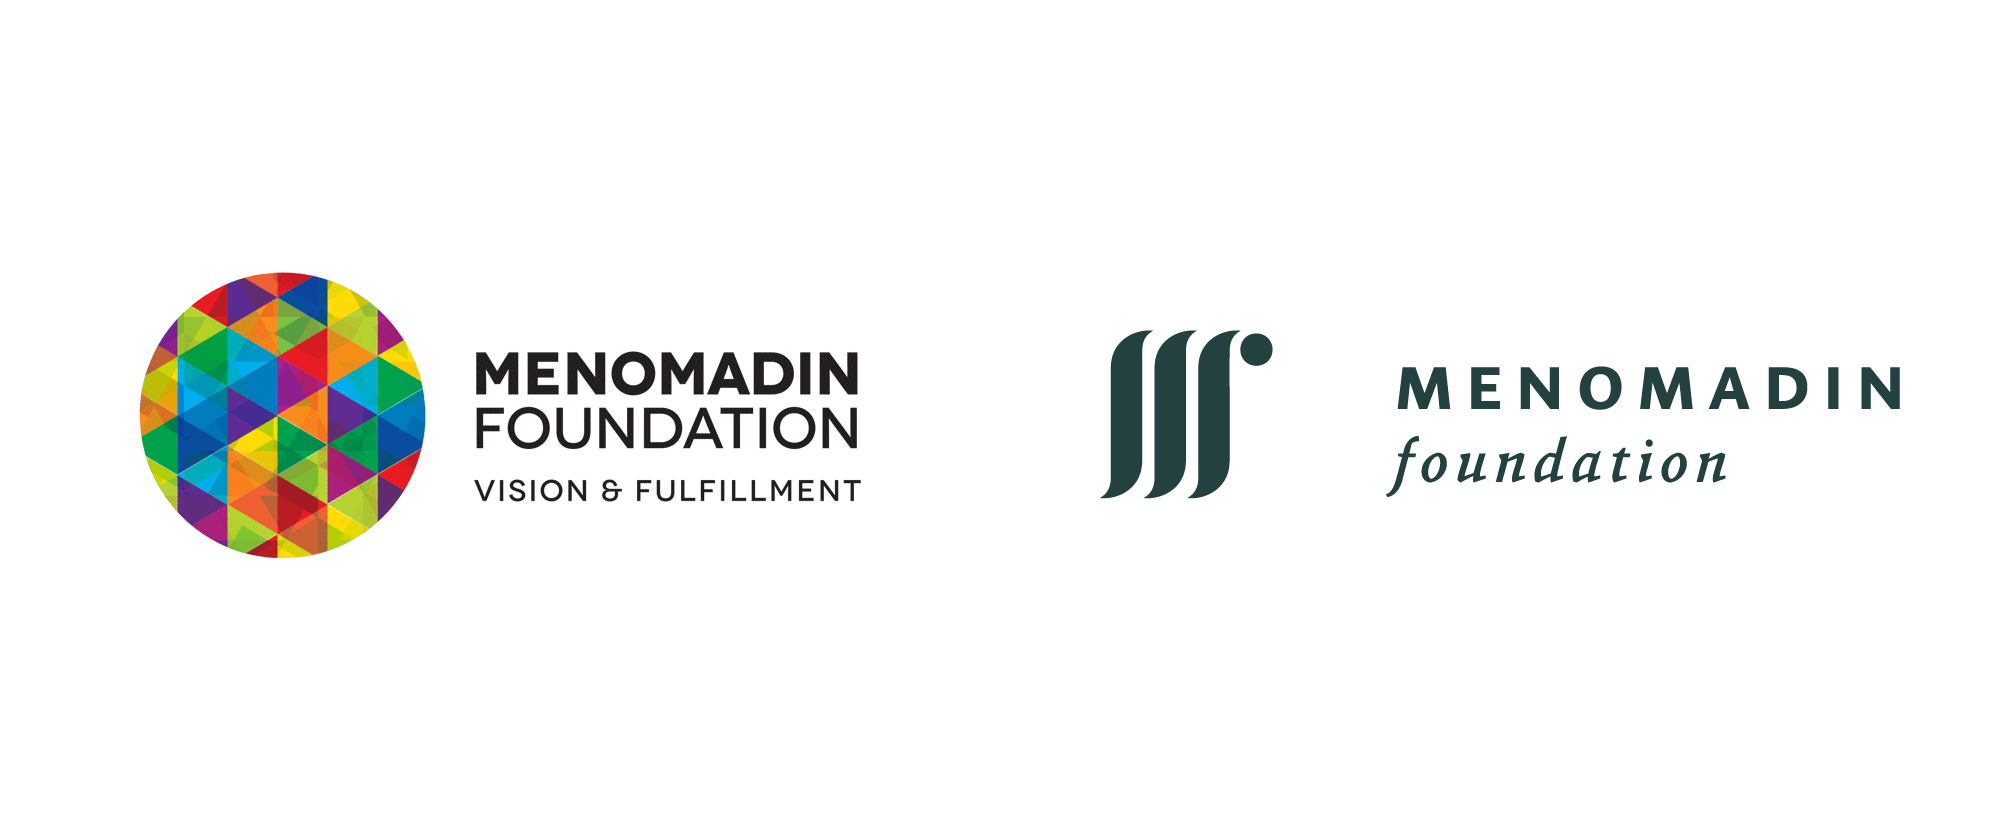 New Logo and Identity for Menomadin Foundation by Designit